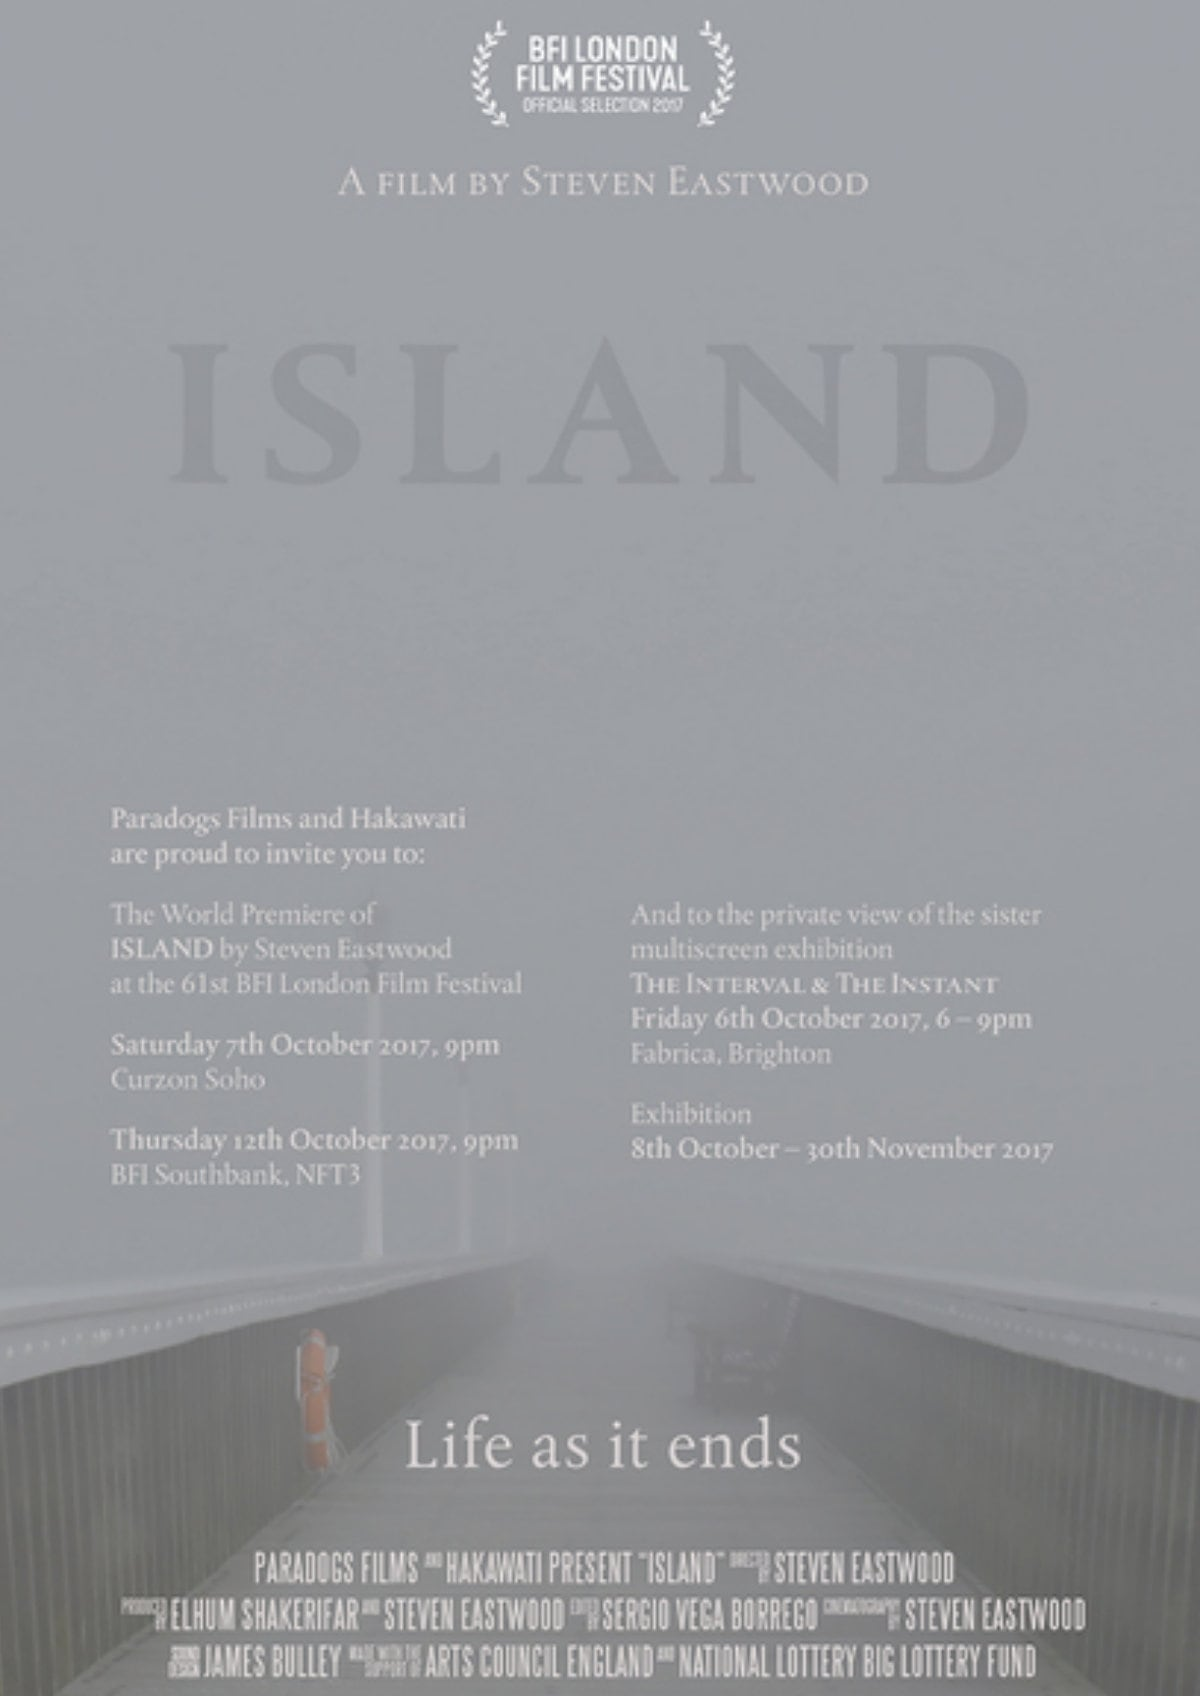 'Island' movie poster